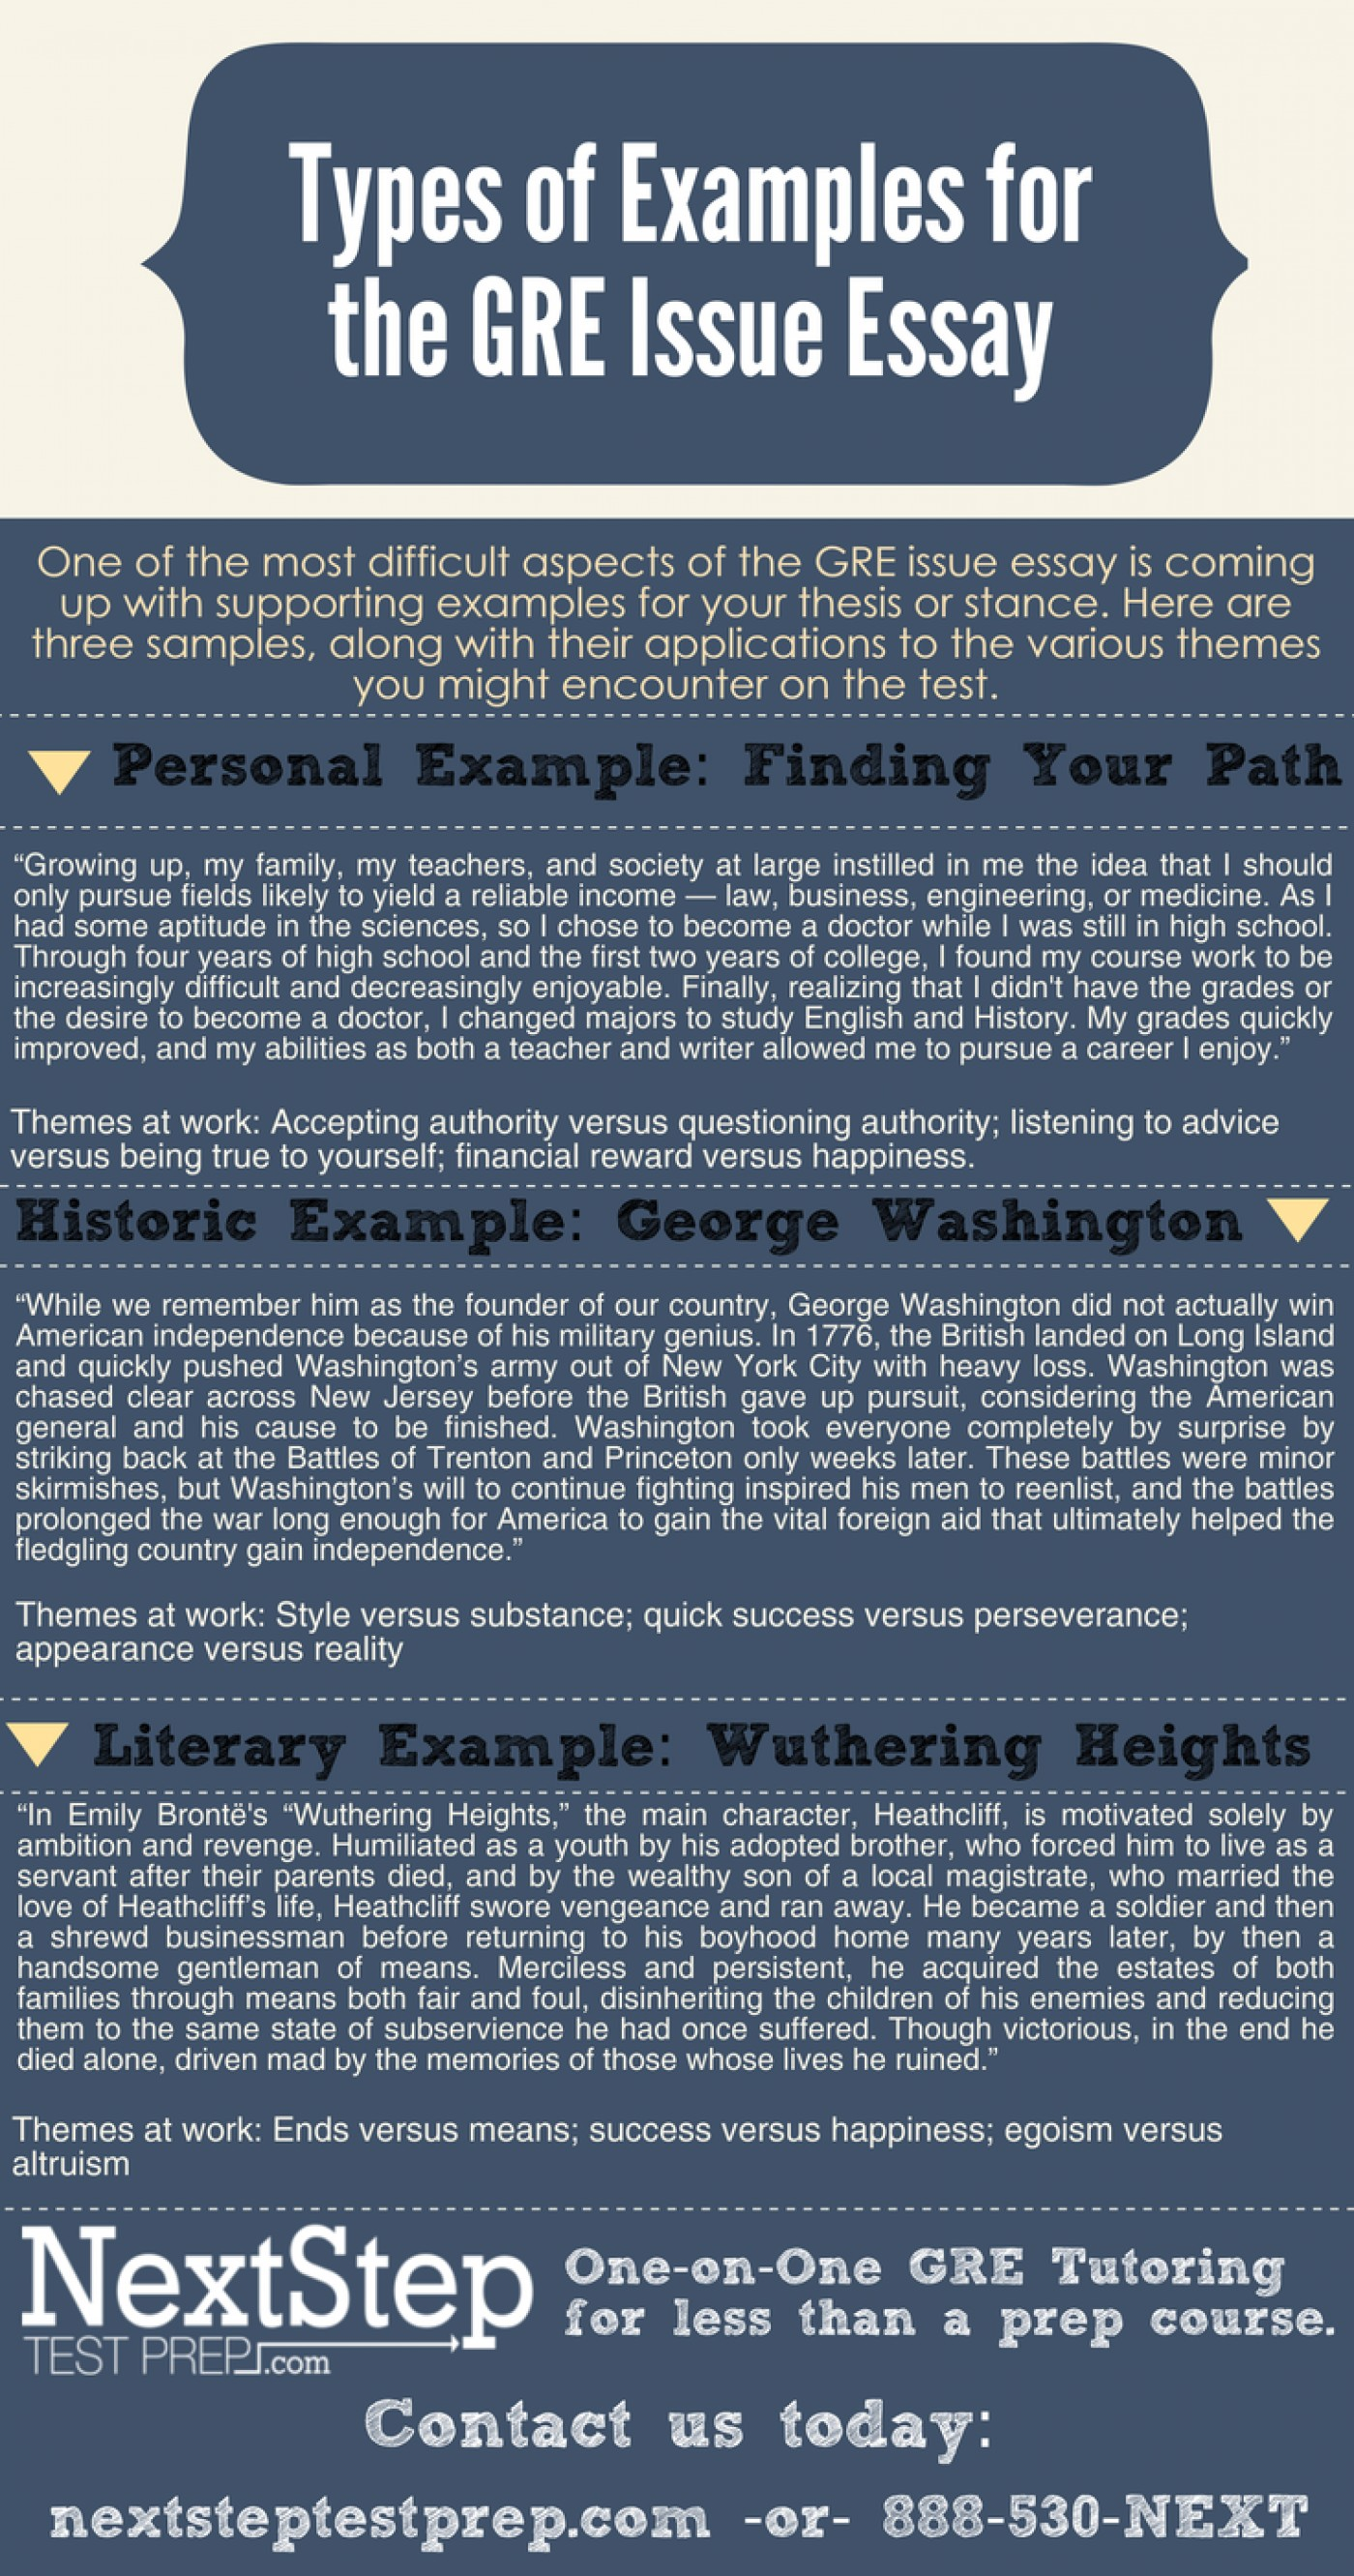 005 Gre Essay Examples Ig Draft 28129 Scaled Example Remarkable Topics Pdf Analytical Writing Grader Issue Pool Solutions 1400